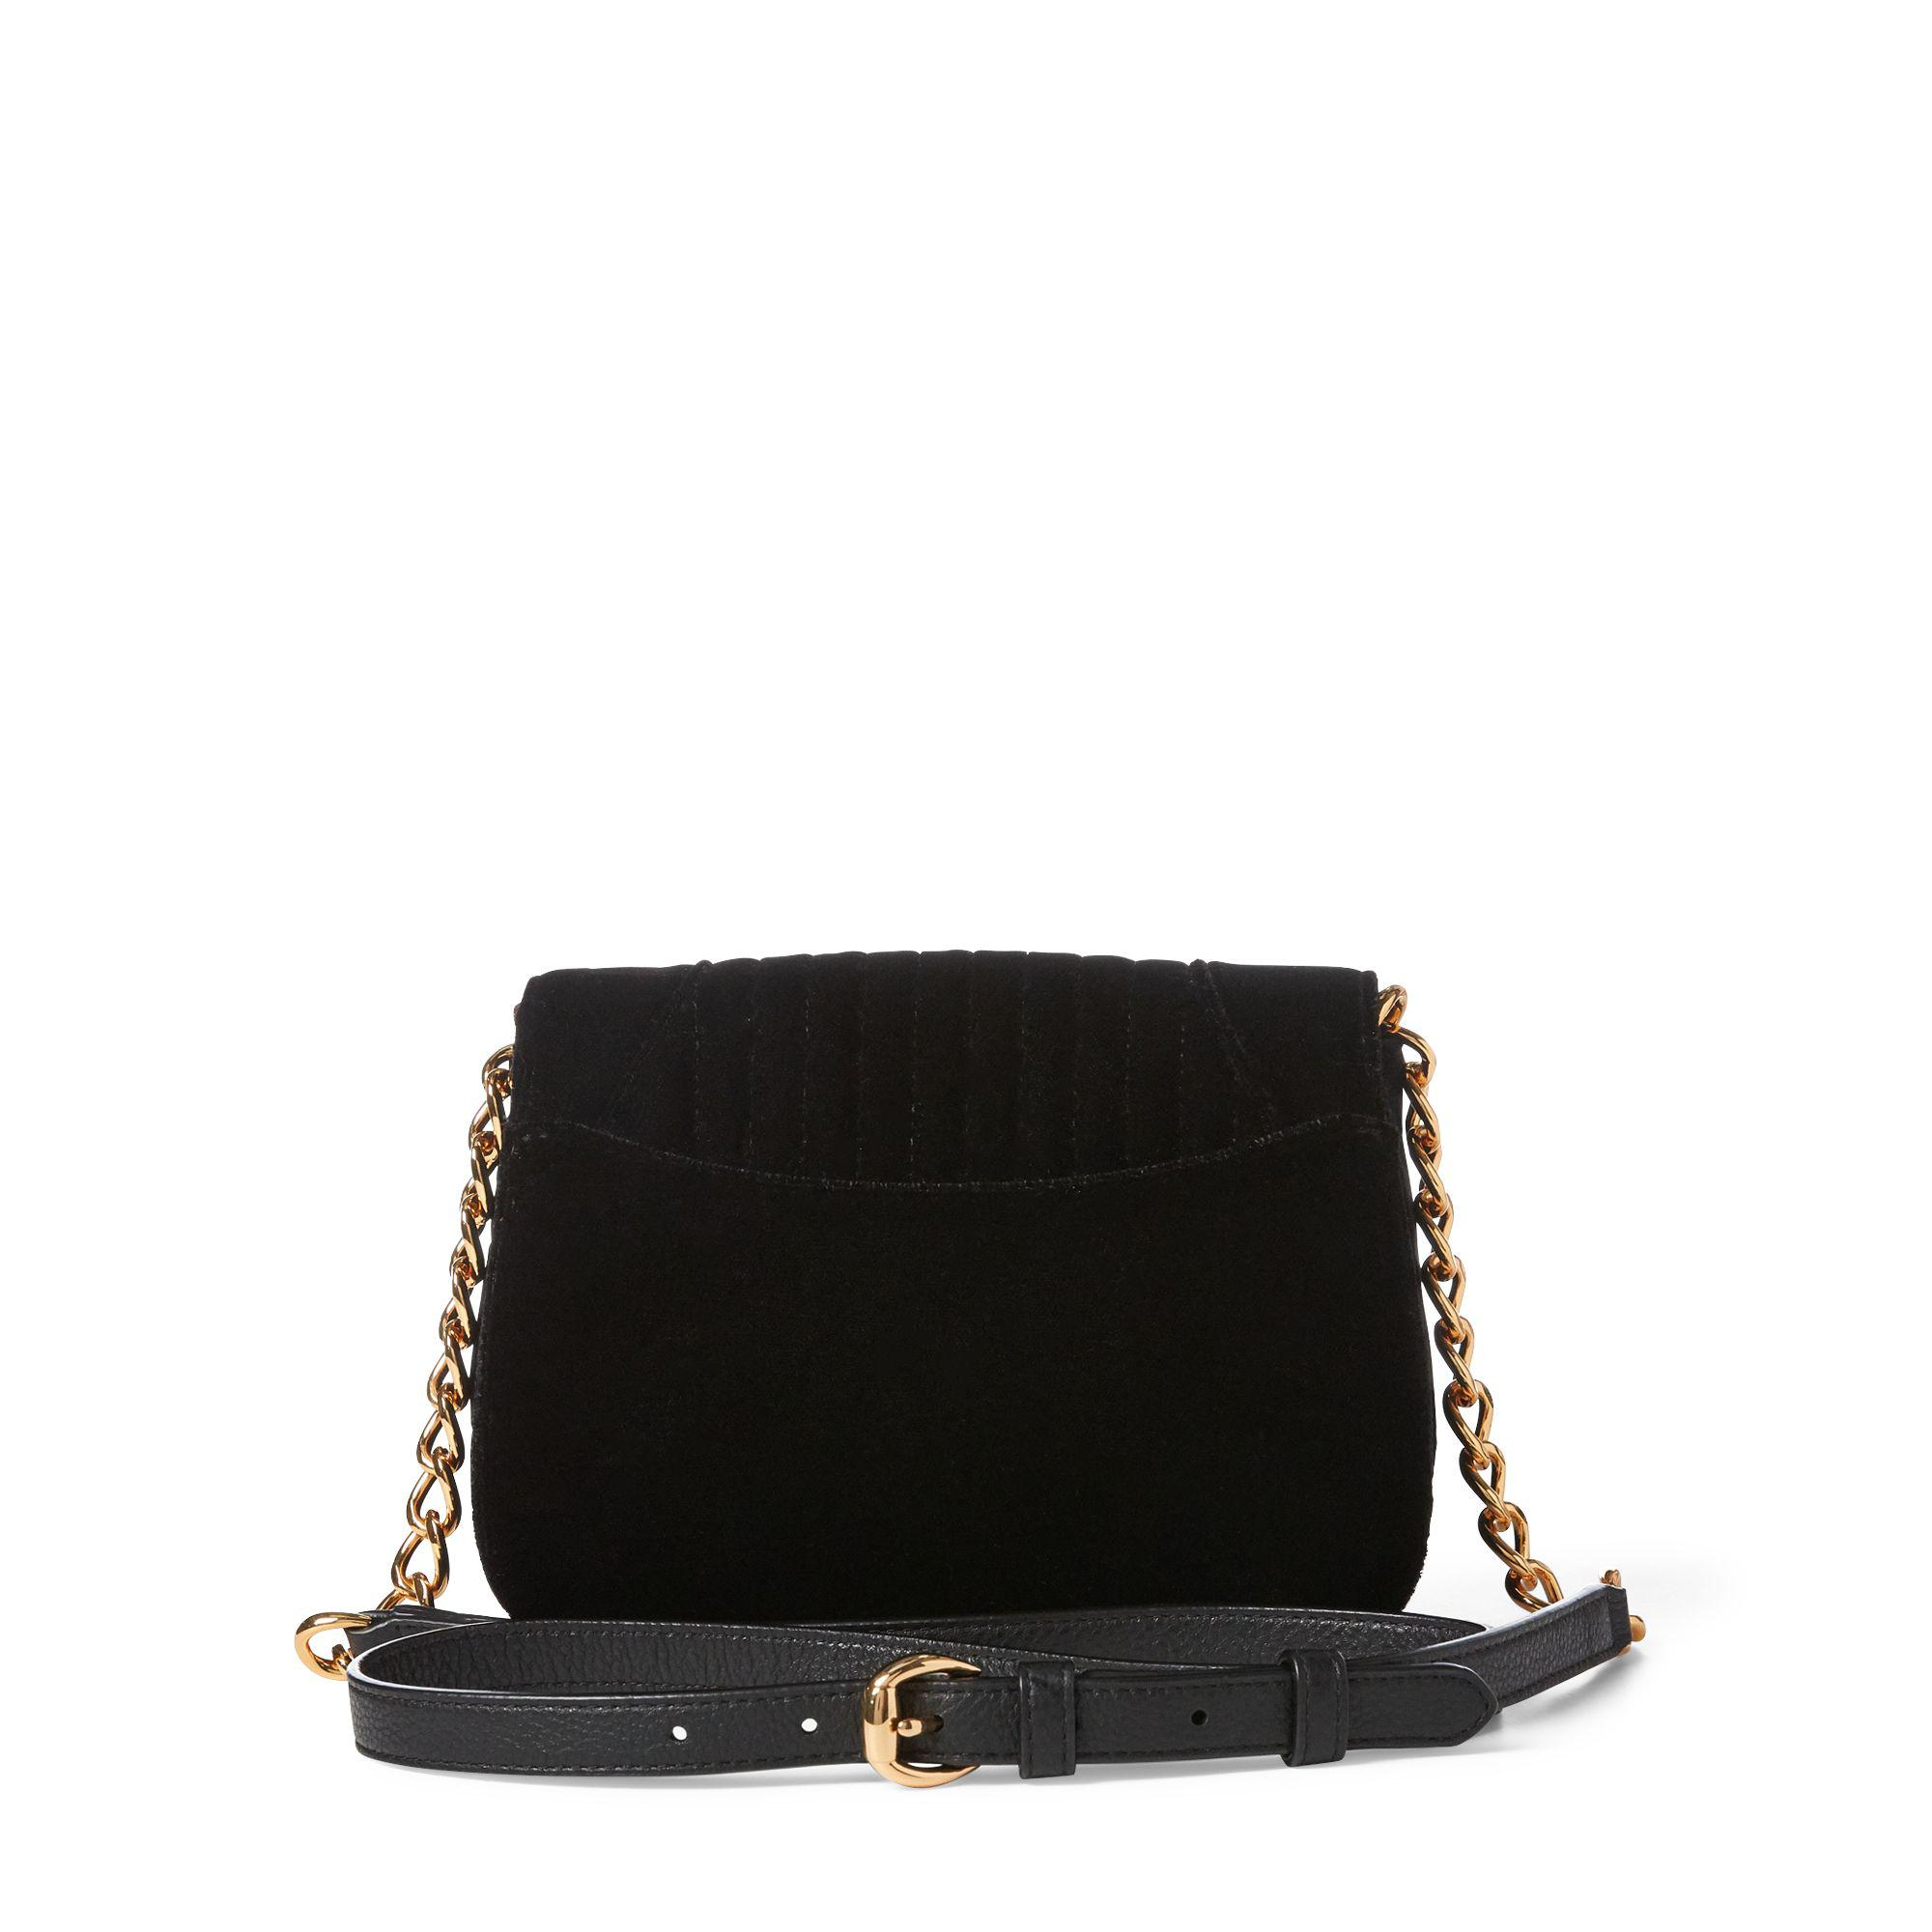 aff8f2105614 Ralph Lauren - Black Velvet Crossbody Bag - Lyst. View fullscreen